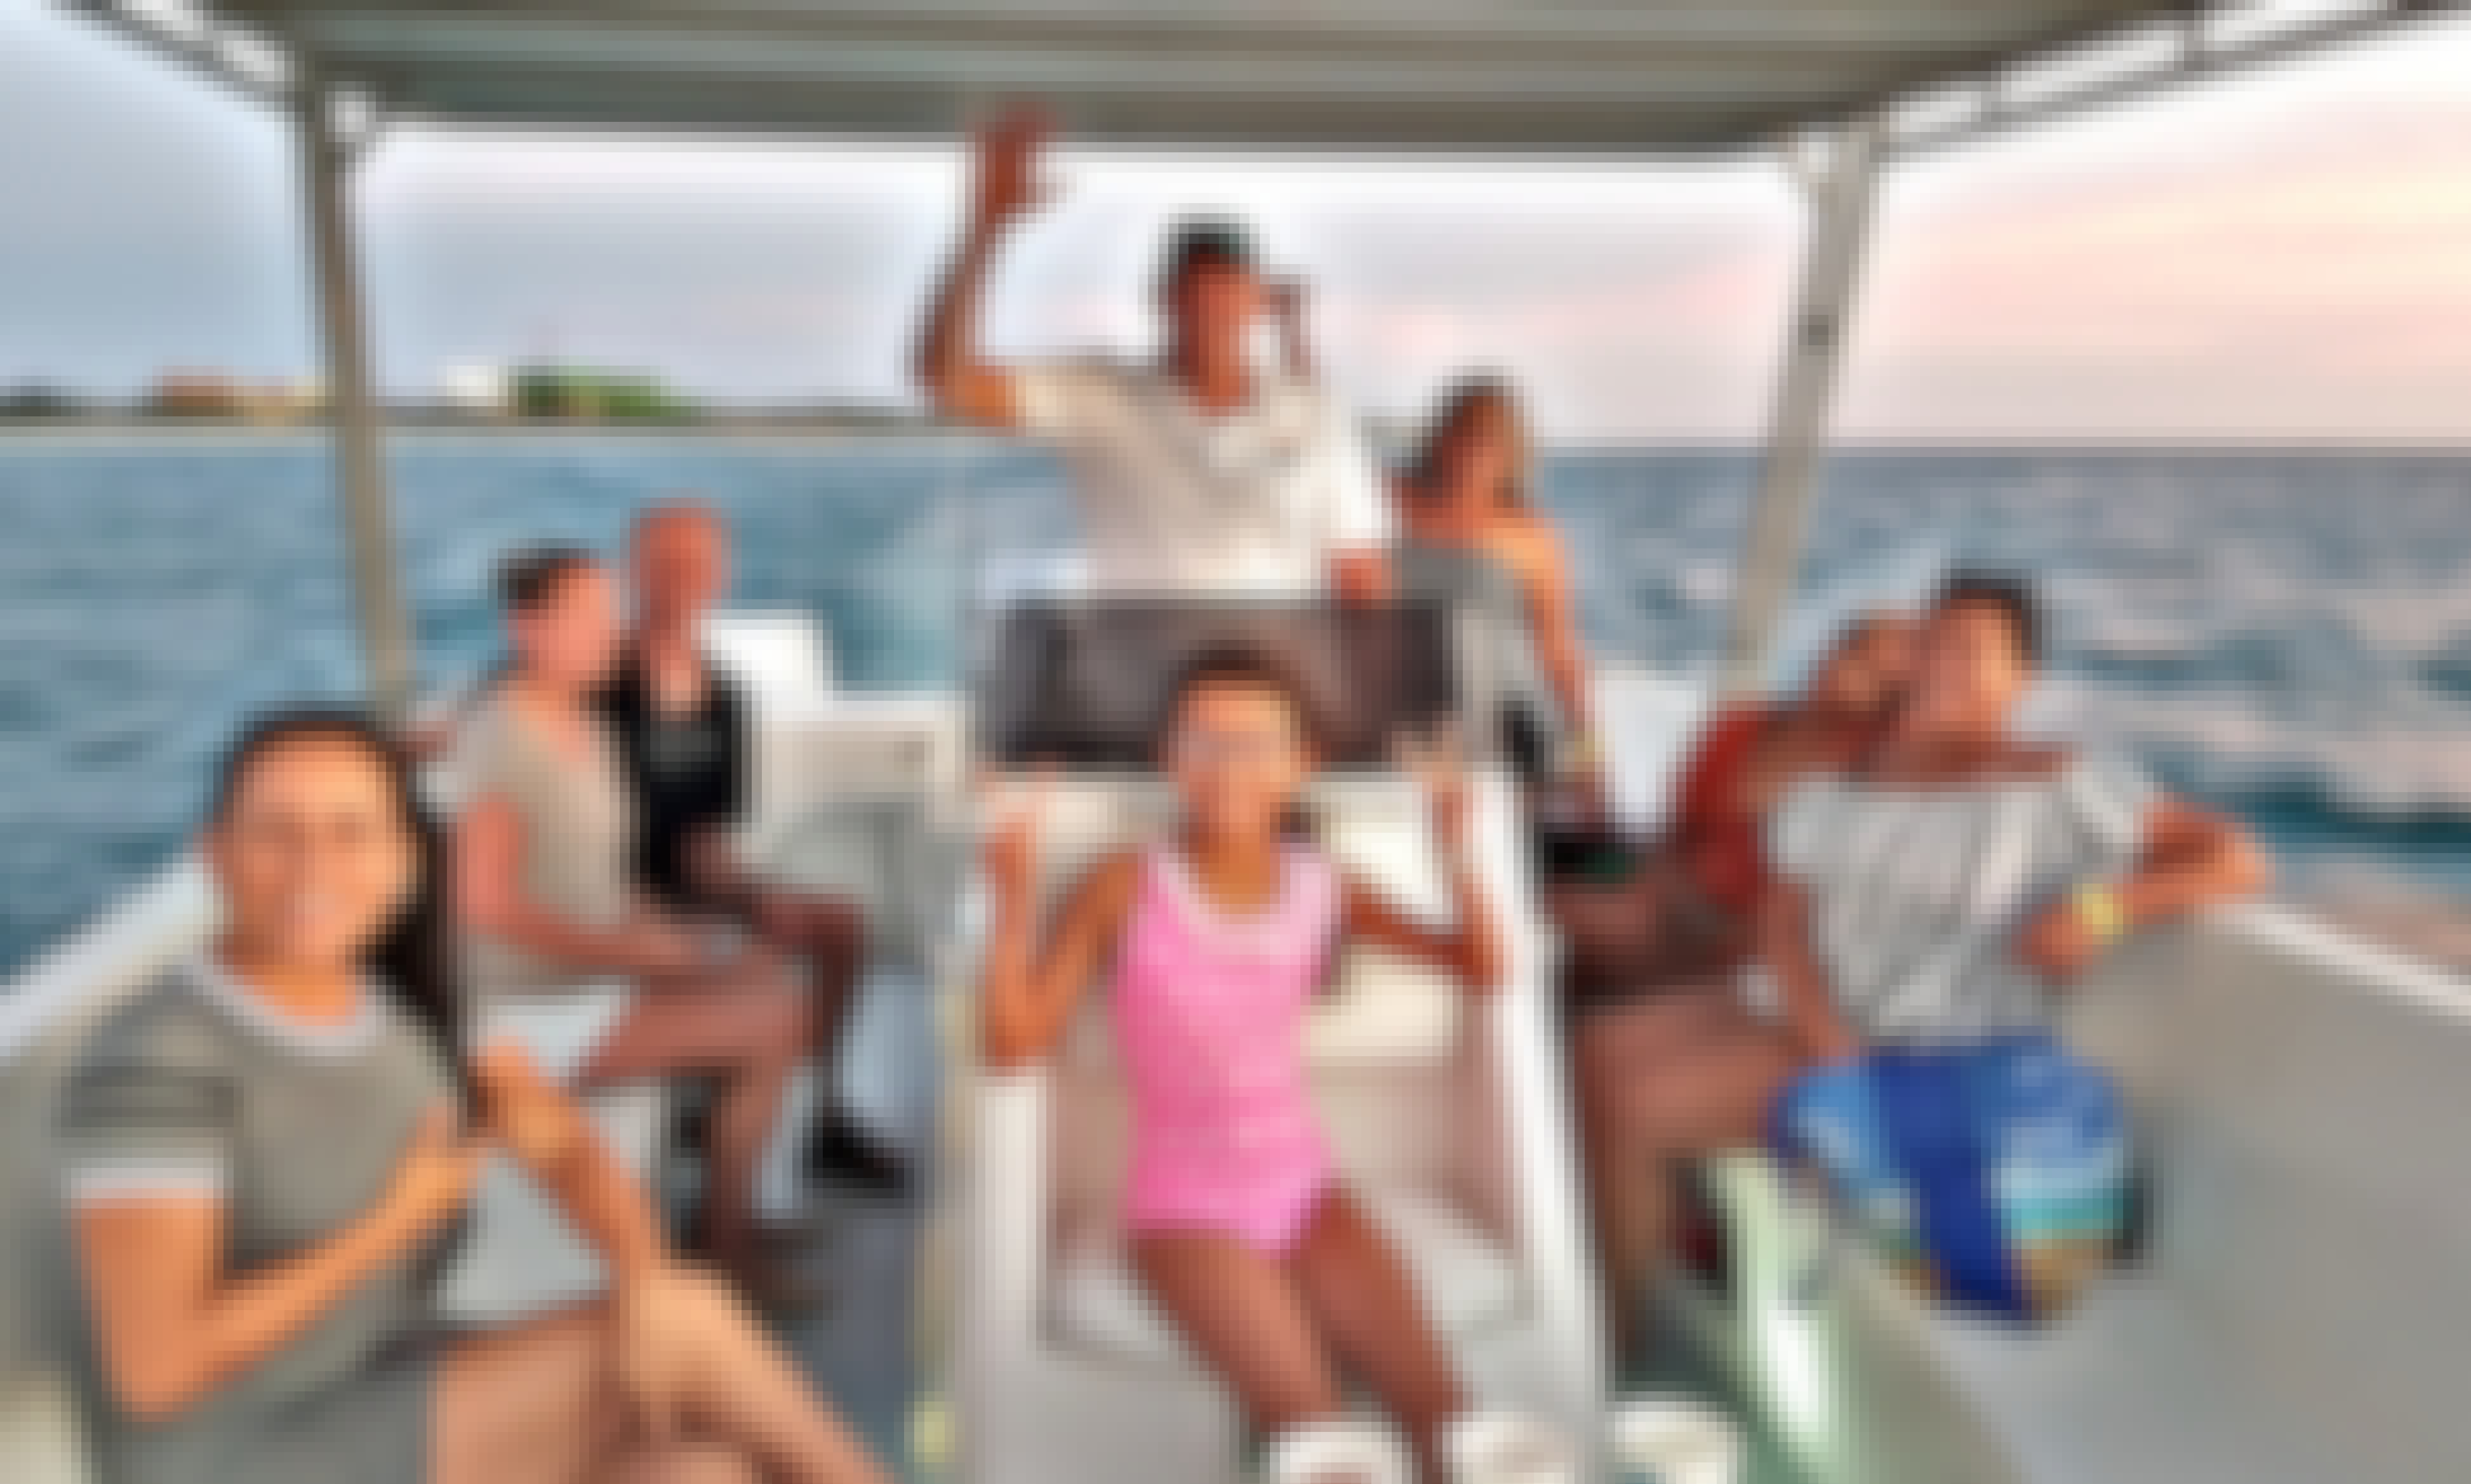 Aruba Private Boat no other people around you ,thats the way to do a sunset-cruise! Or combi-cruise  (snorkeling &sunset) palmbeach - highrise hotels (mariott surfclub-moomba beach )